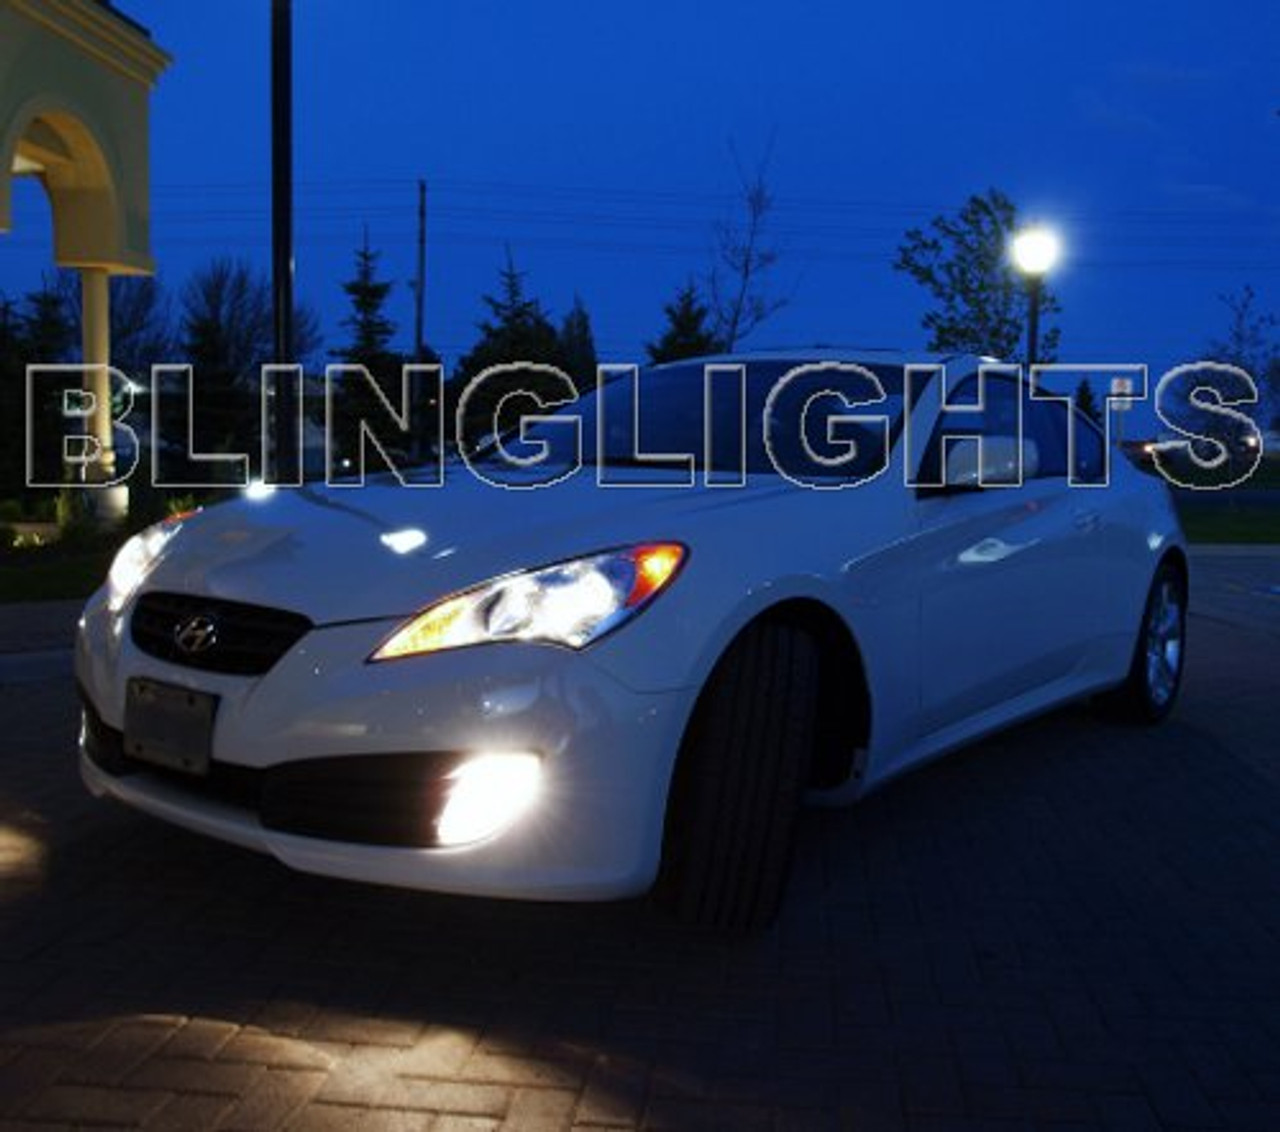 2010 2011 2012 Hyundai Genesis Coupe Bright Bulbs For Headlamps Headlights Head Lamps Lights